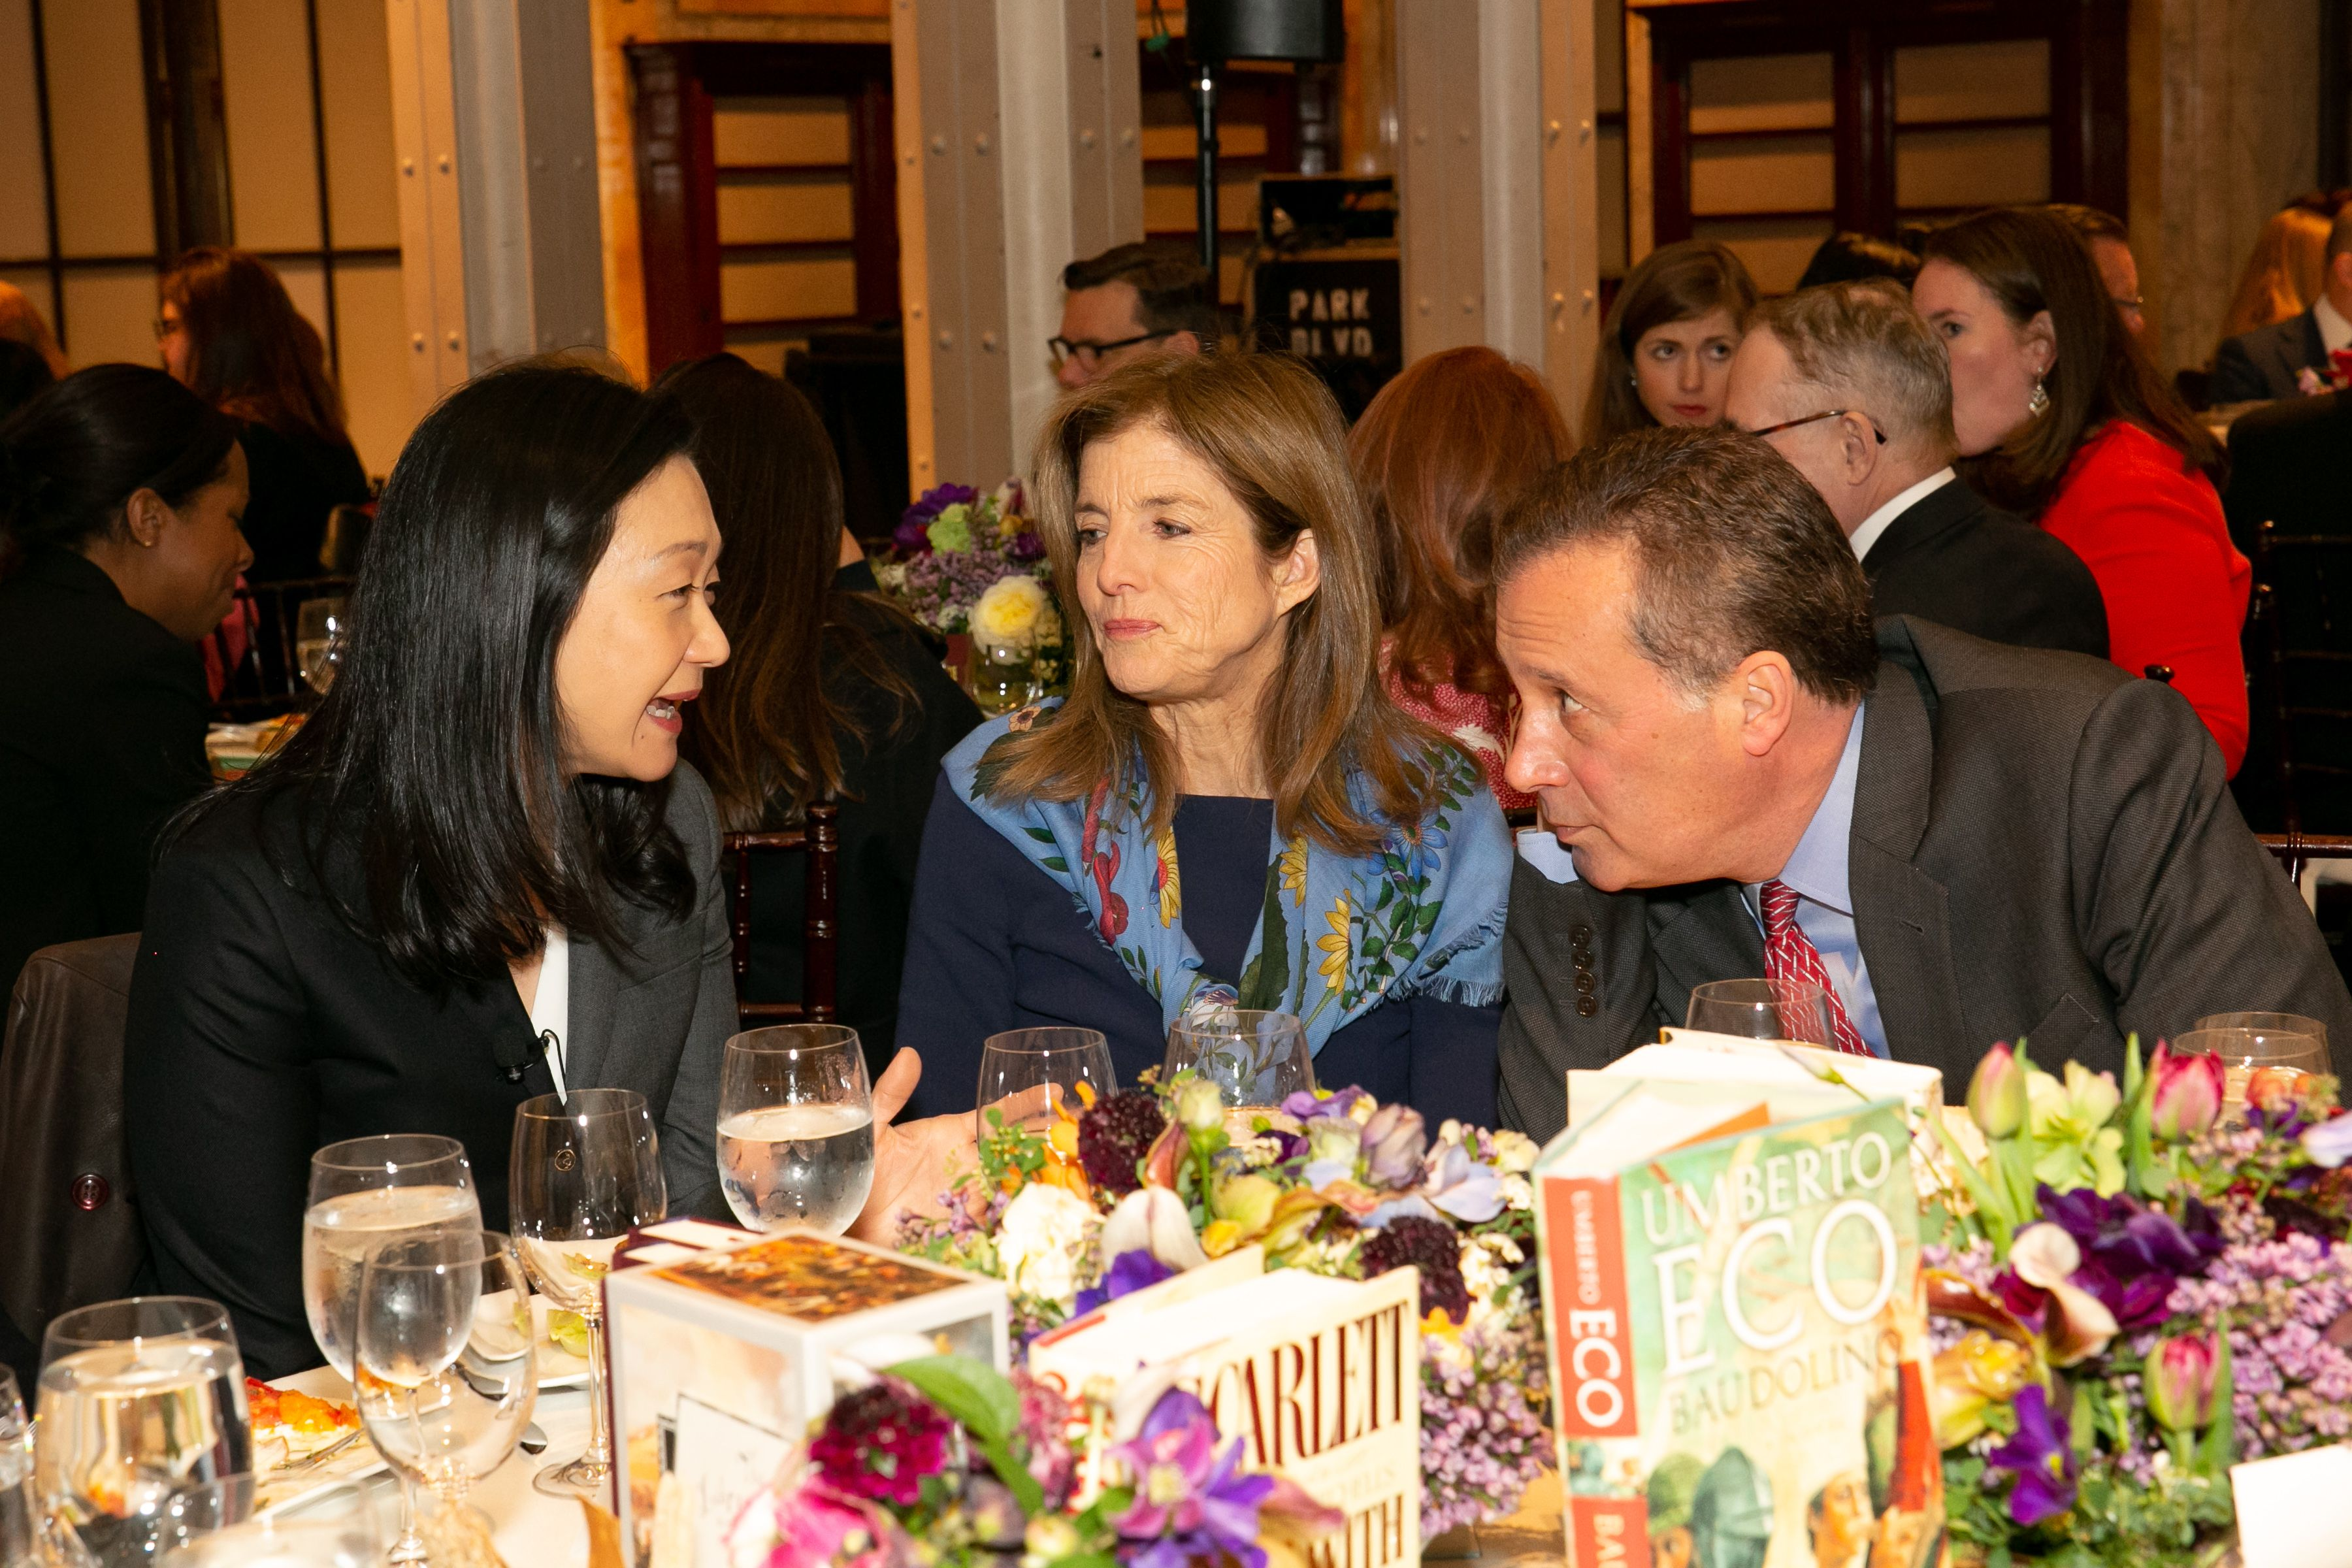 Inside the New York Public Library's Annual Lunch